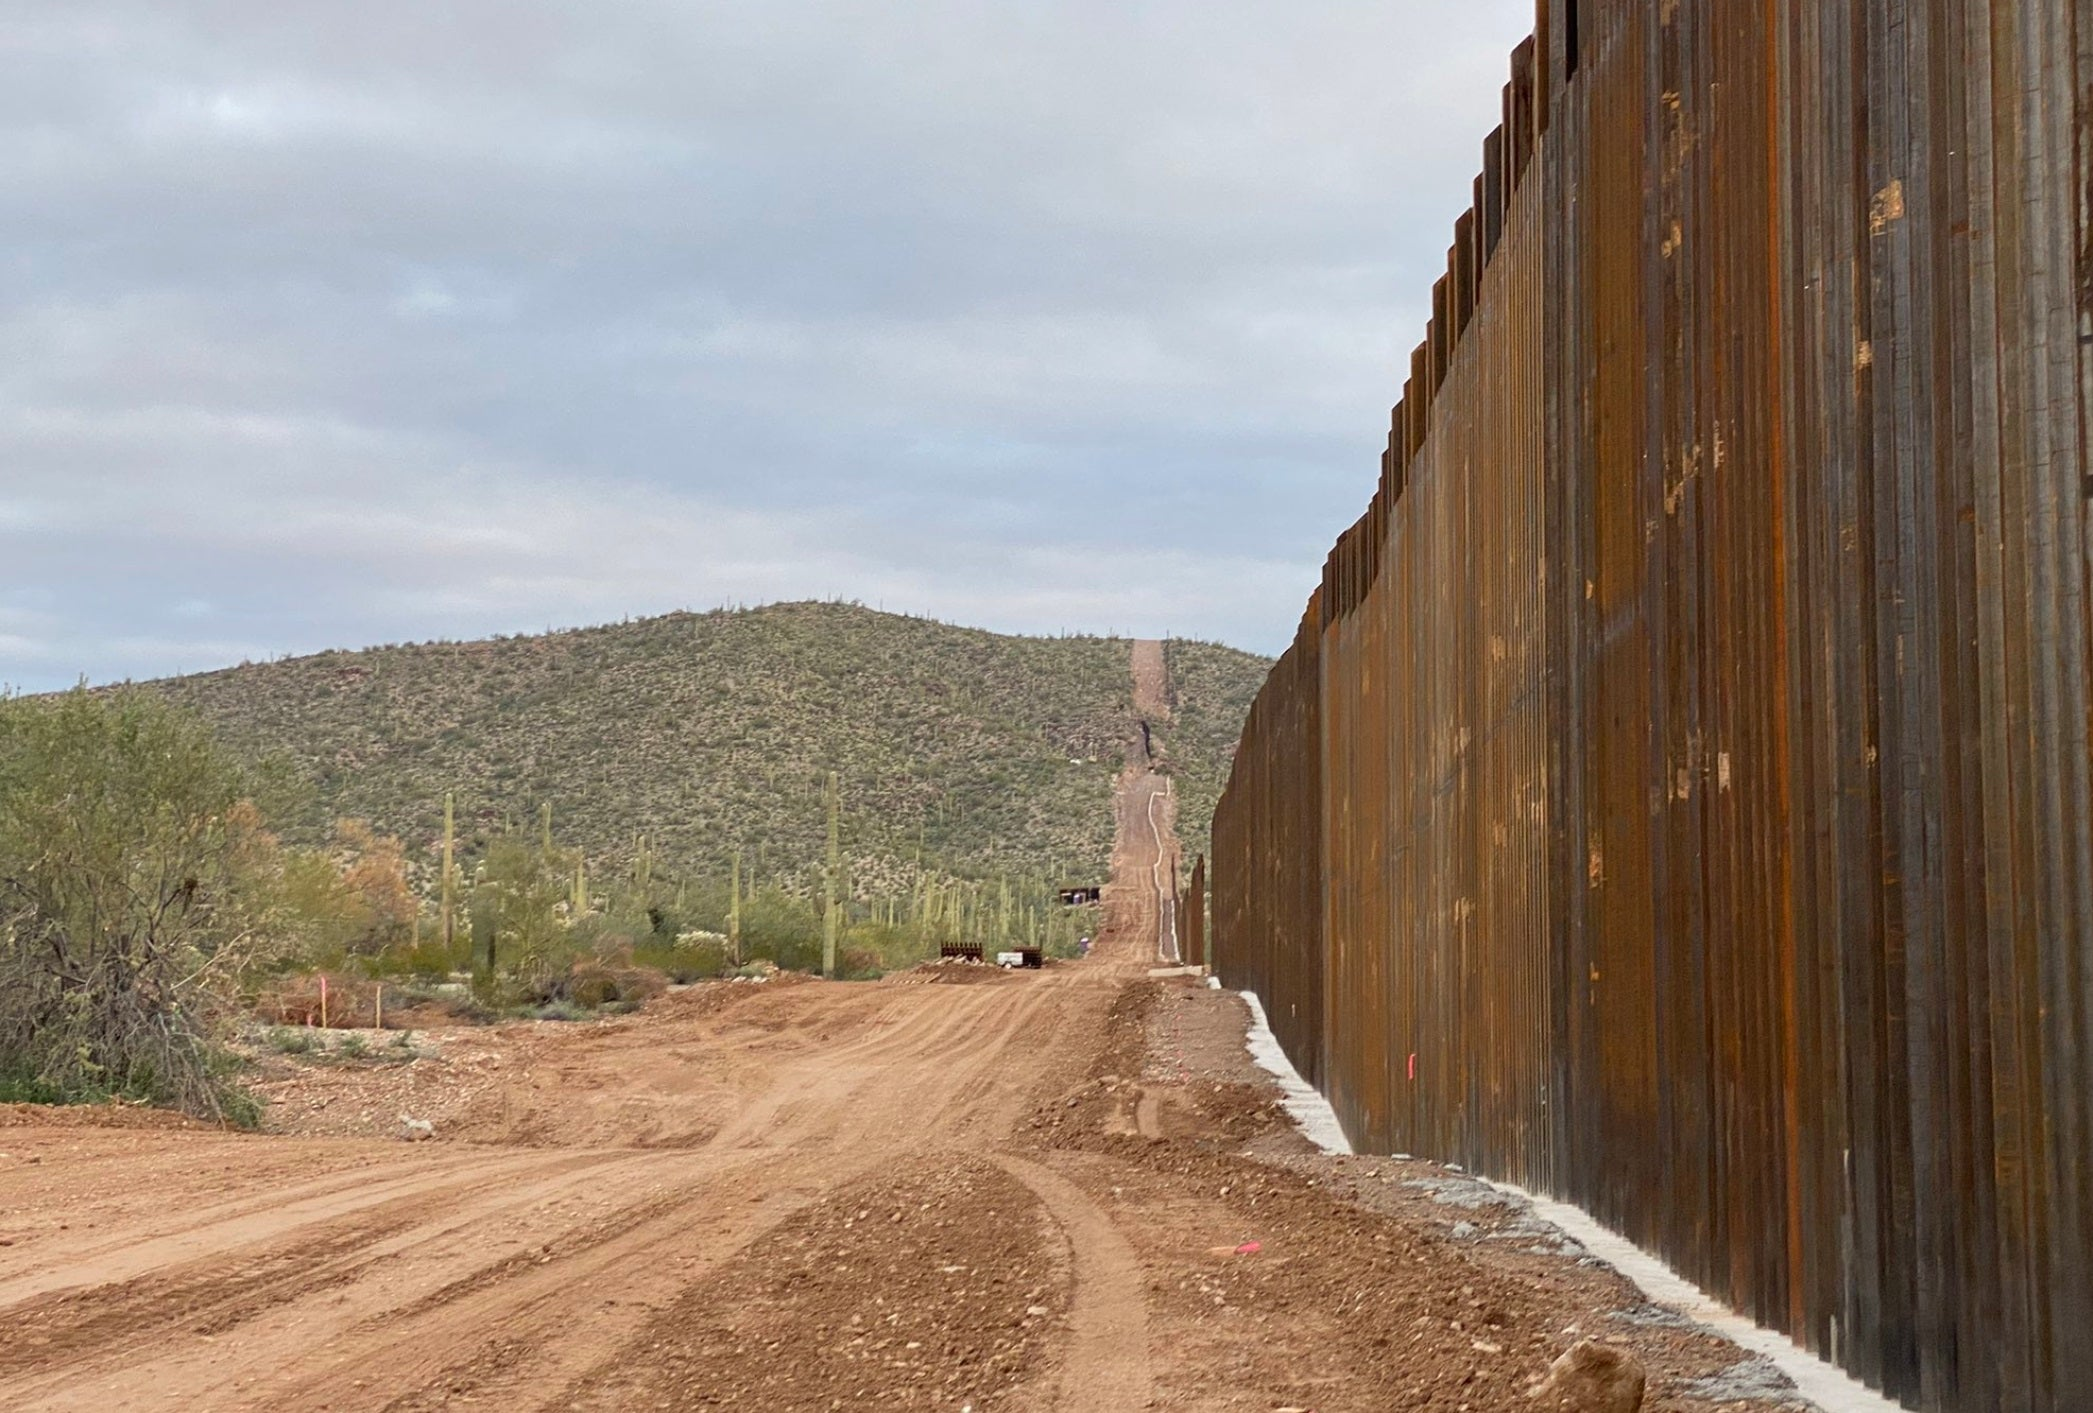 How the Trump border wall sapped a desert oasis dry